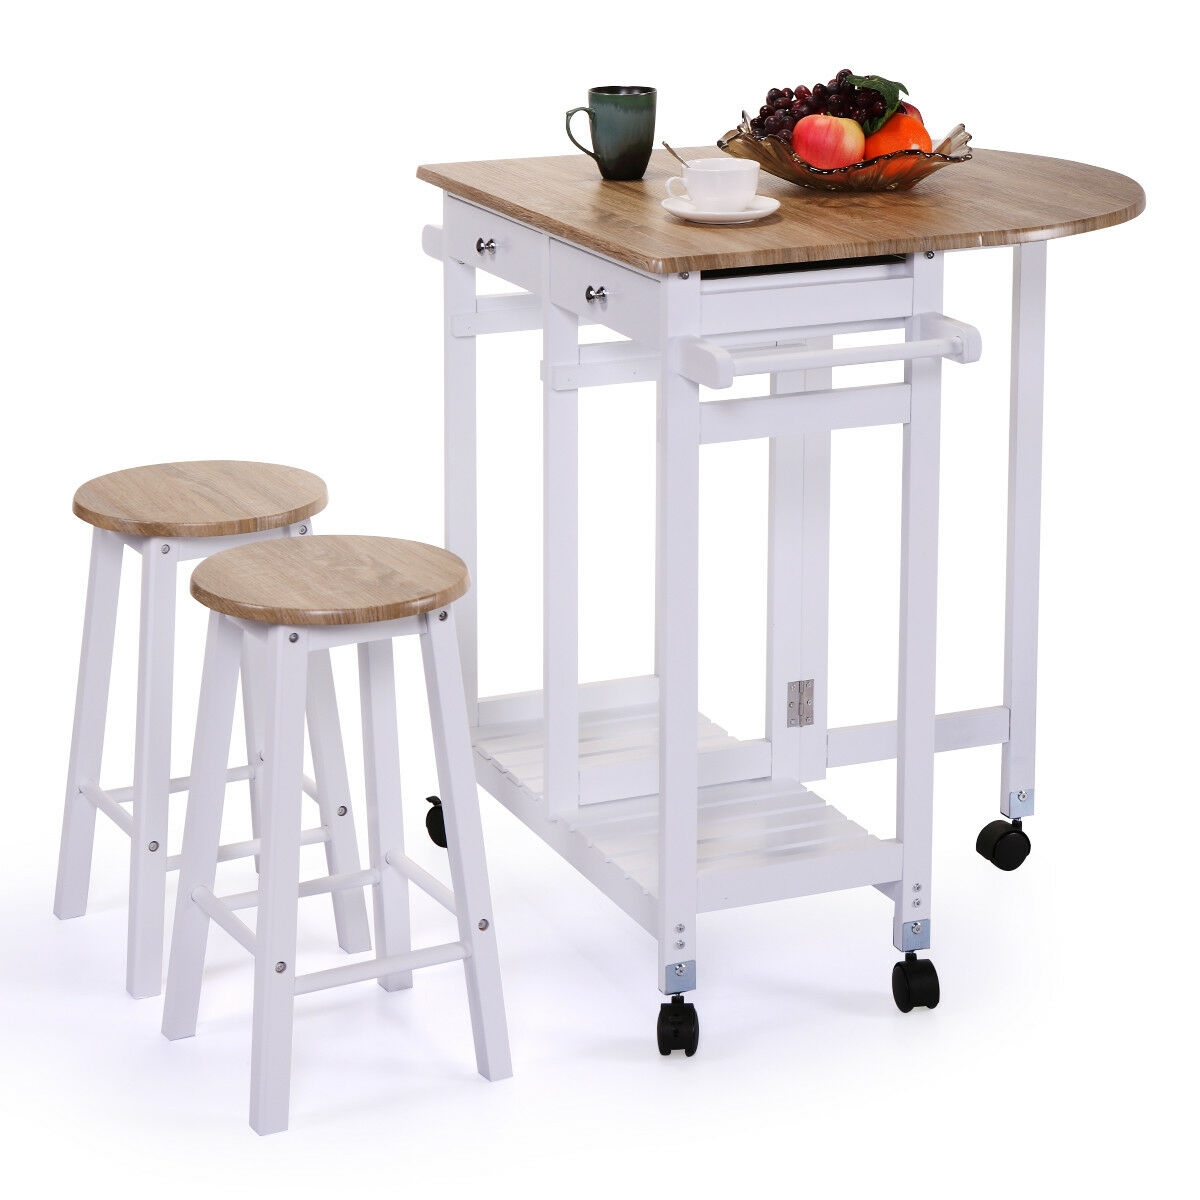 Rolling Kitchen Island Trolley Cart Drop Leaf Table W/ 2 Stools Home  Breakfast 1 Of 12FREE Shipping ...